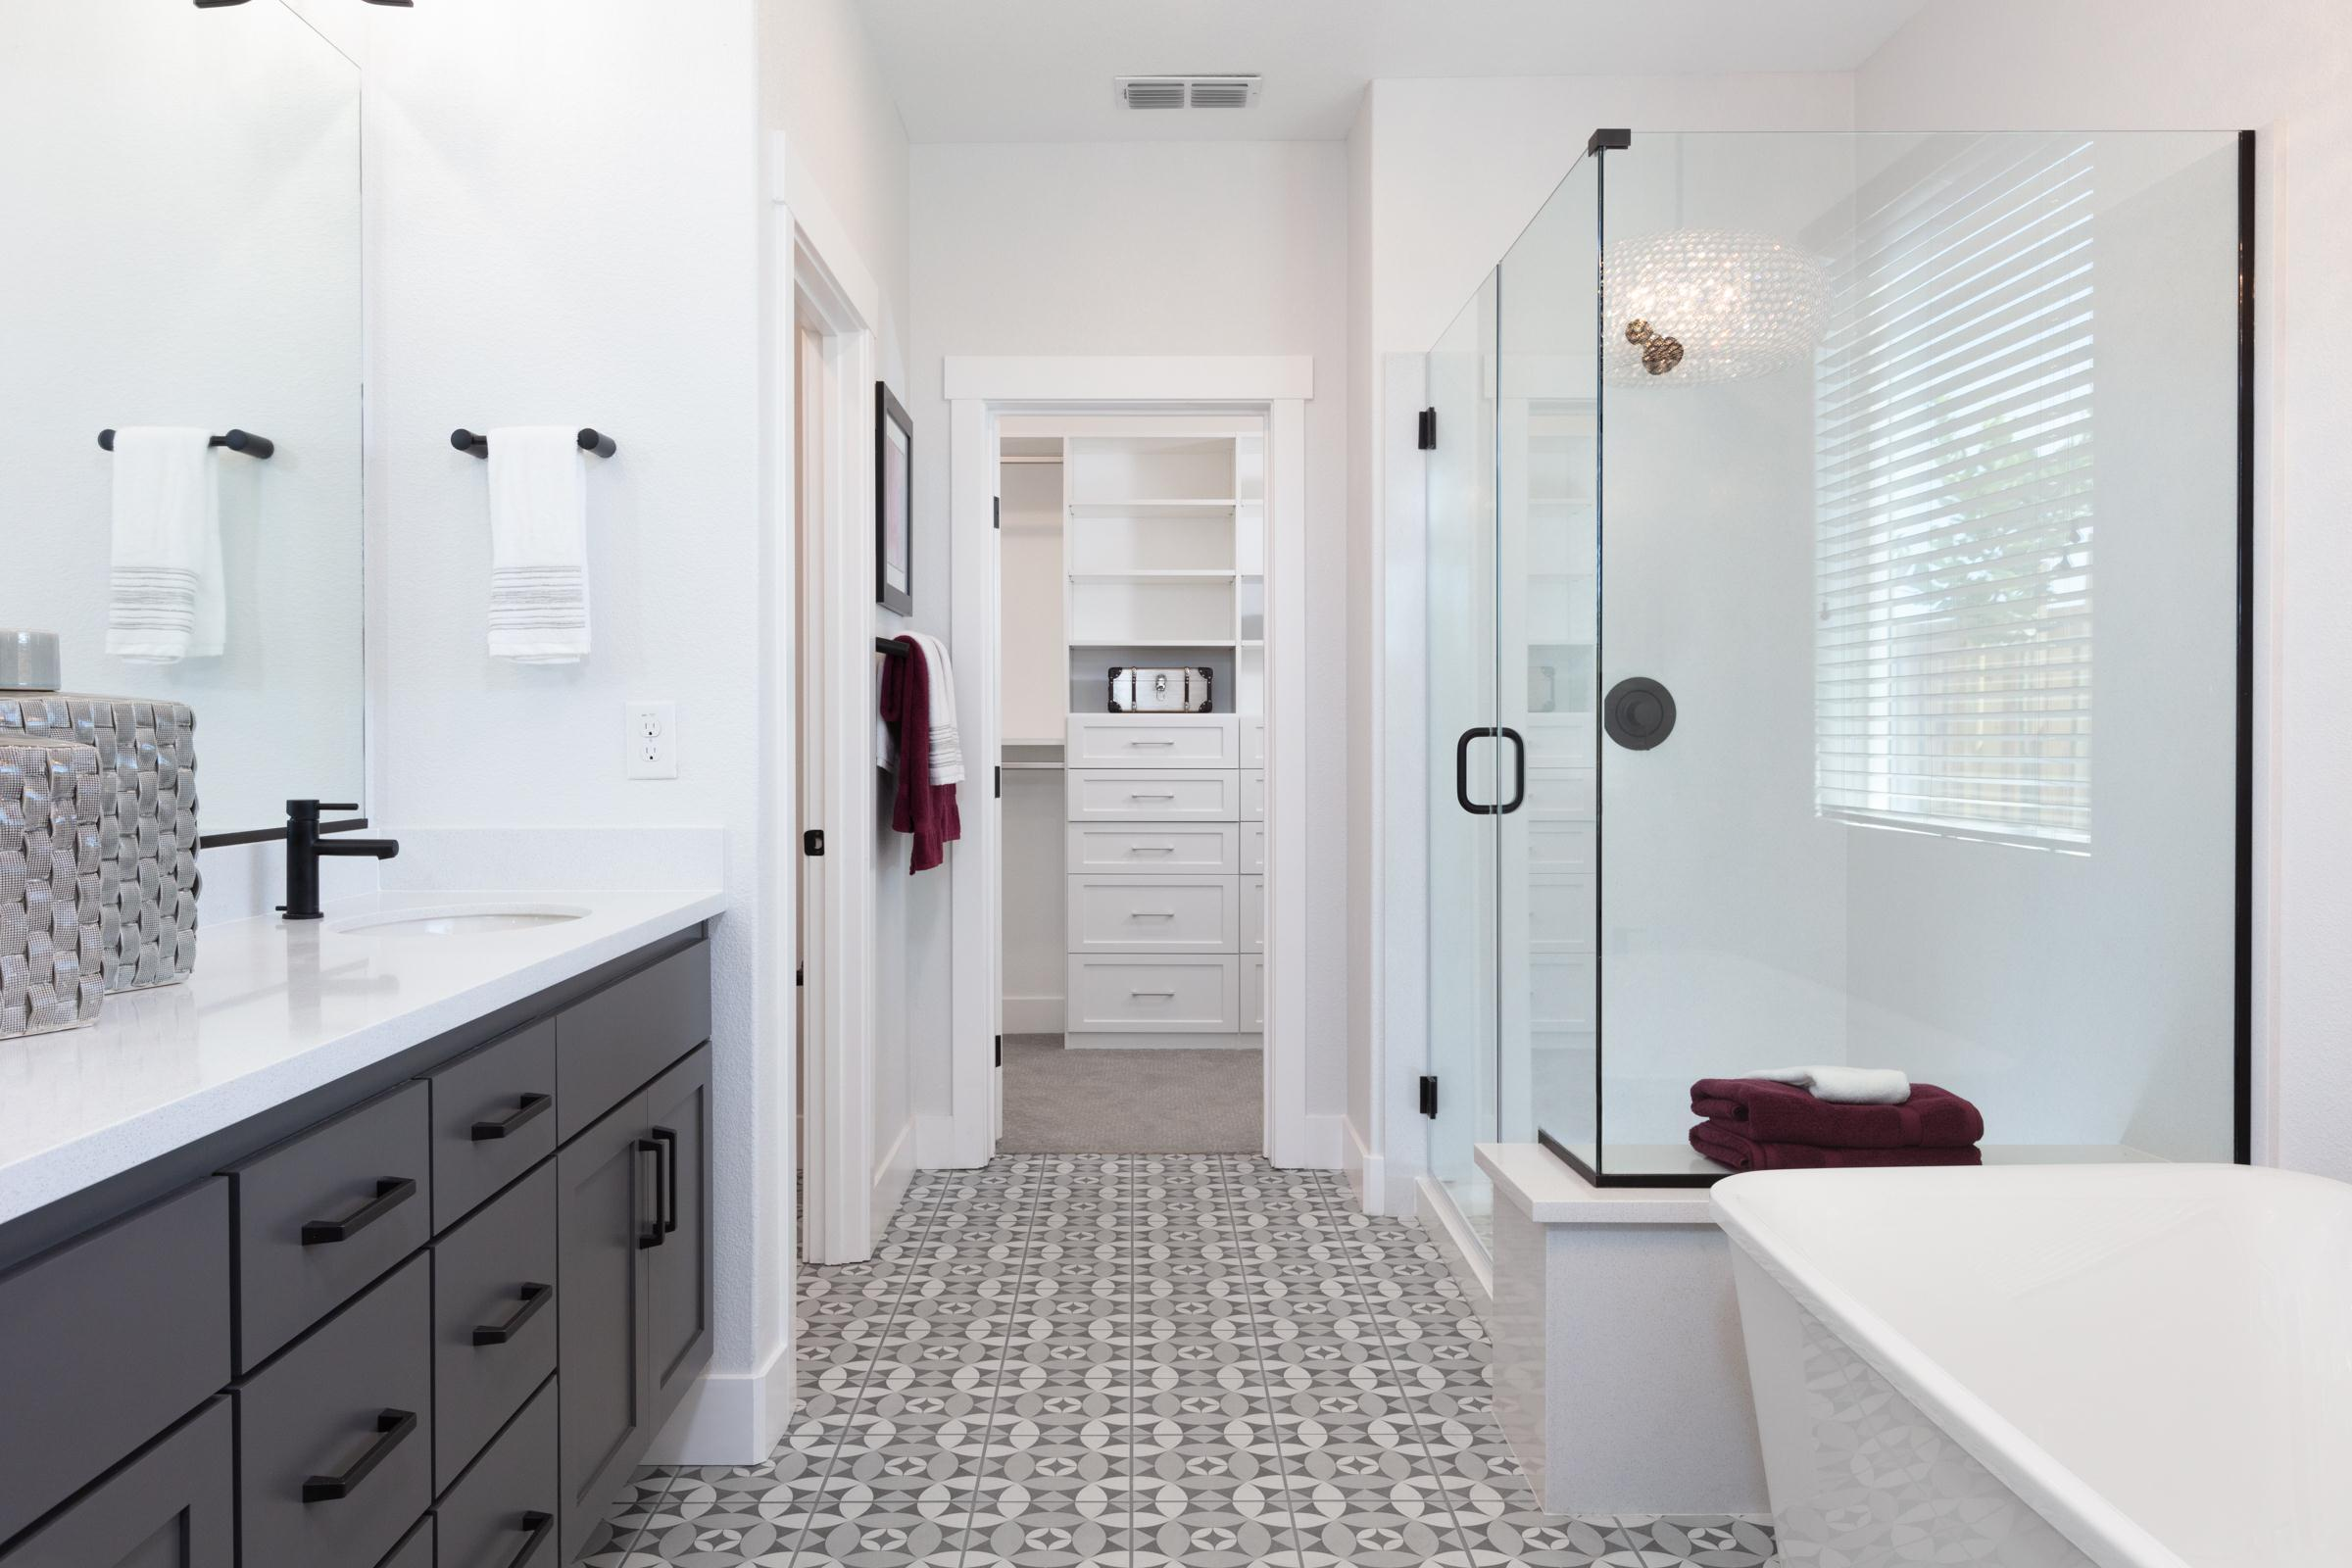 Bathroom featured in the Plan 1 By Anthem United Homes Inc in Stockton-Lodi, CA